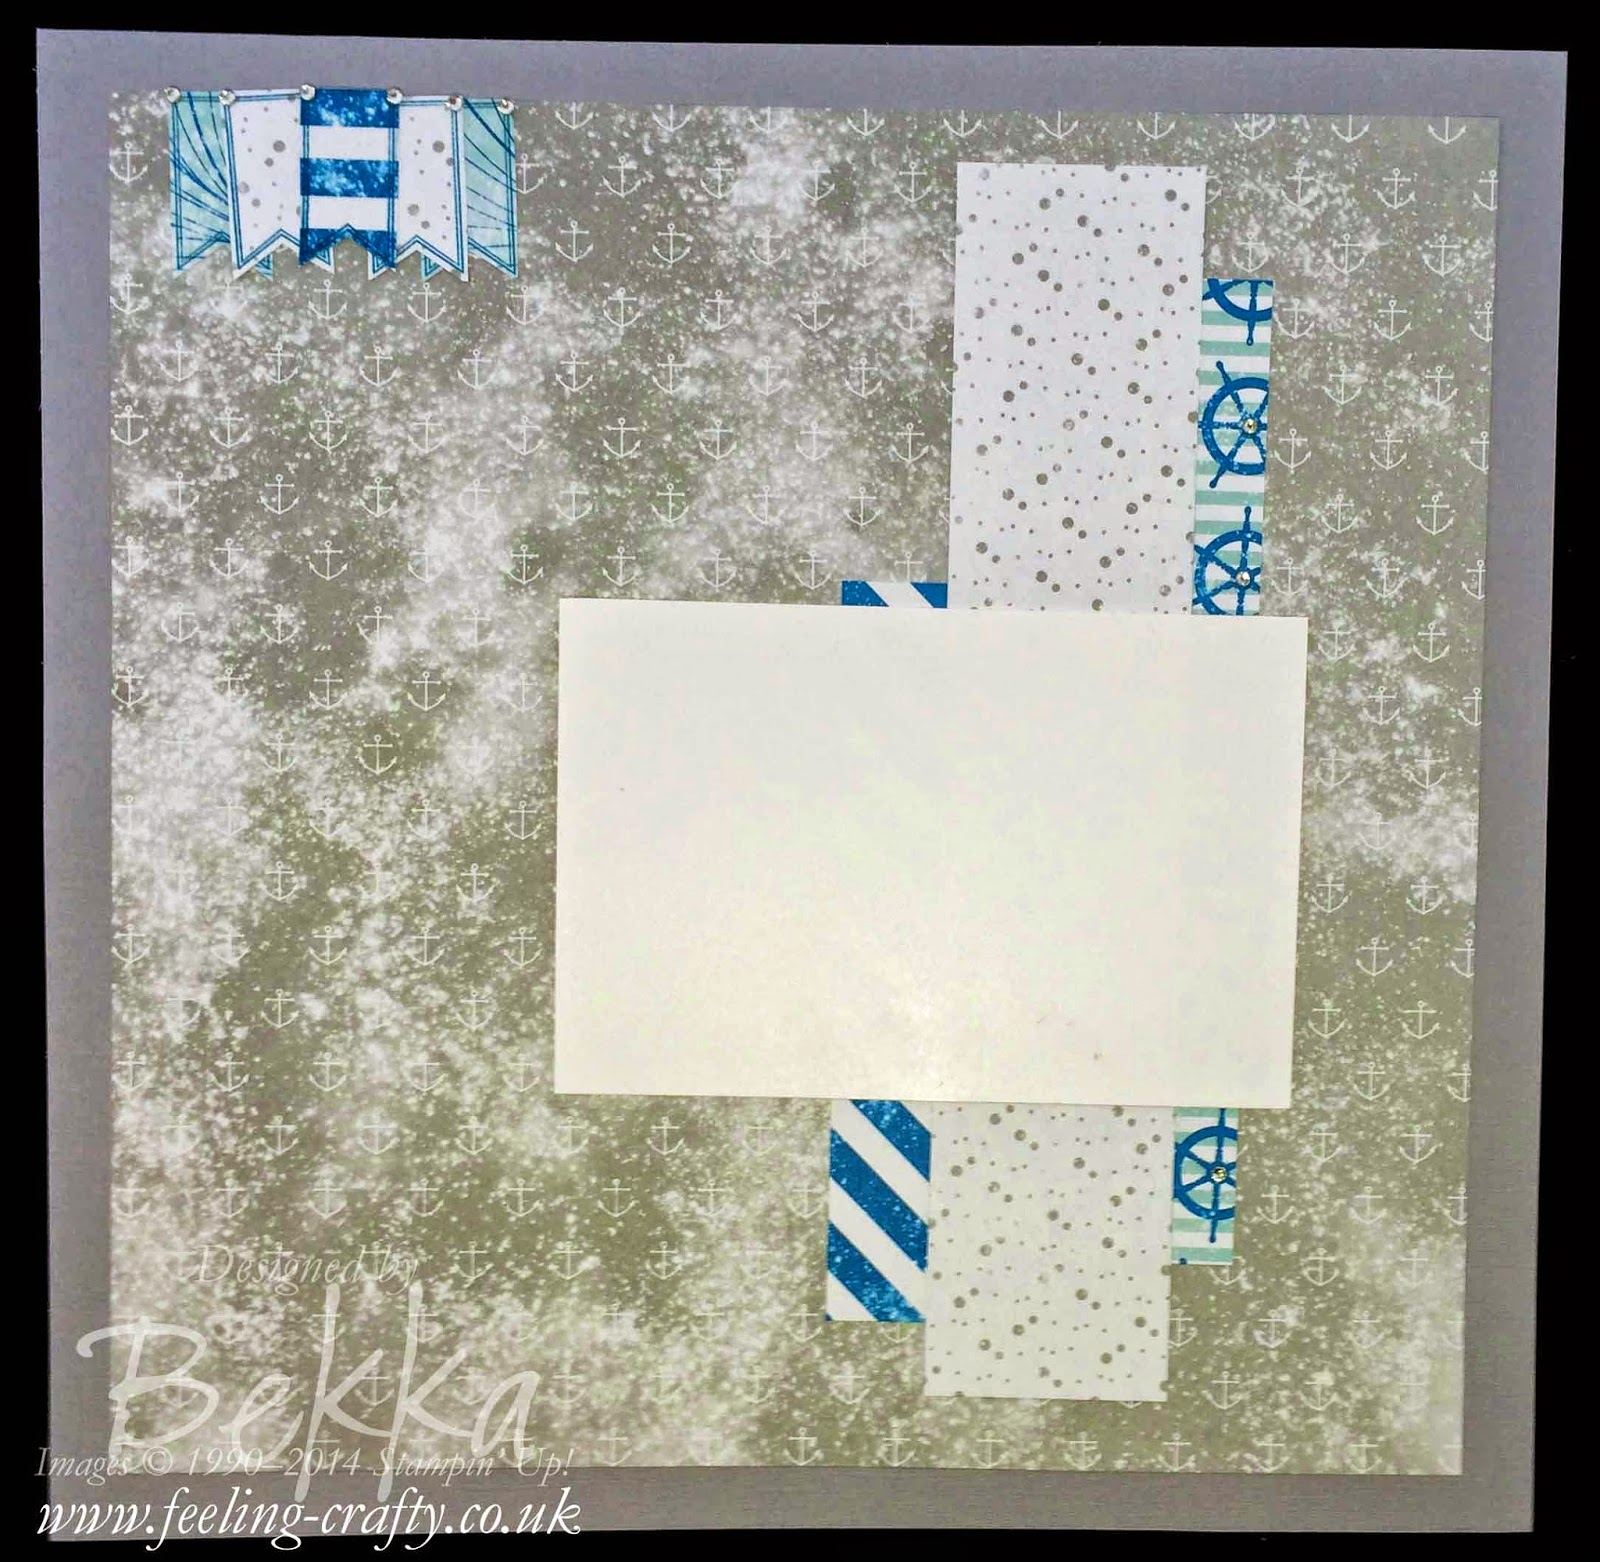 Scrapbook Page featuring the High Tides Stampin' Up! Papers - check this blog every Saturday for great Scrapbooking Ideas